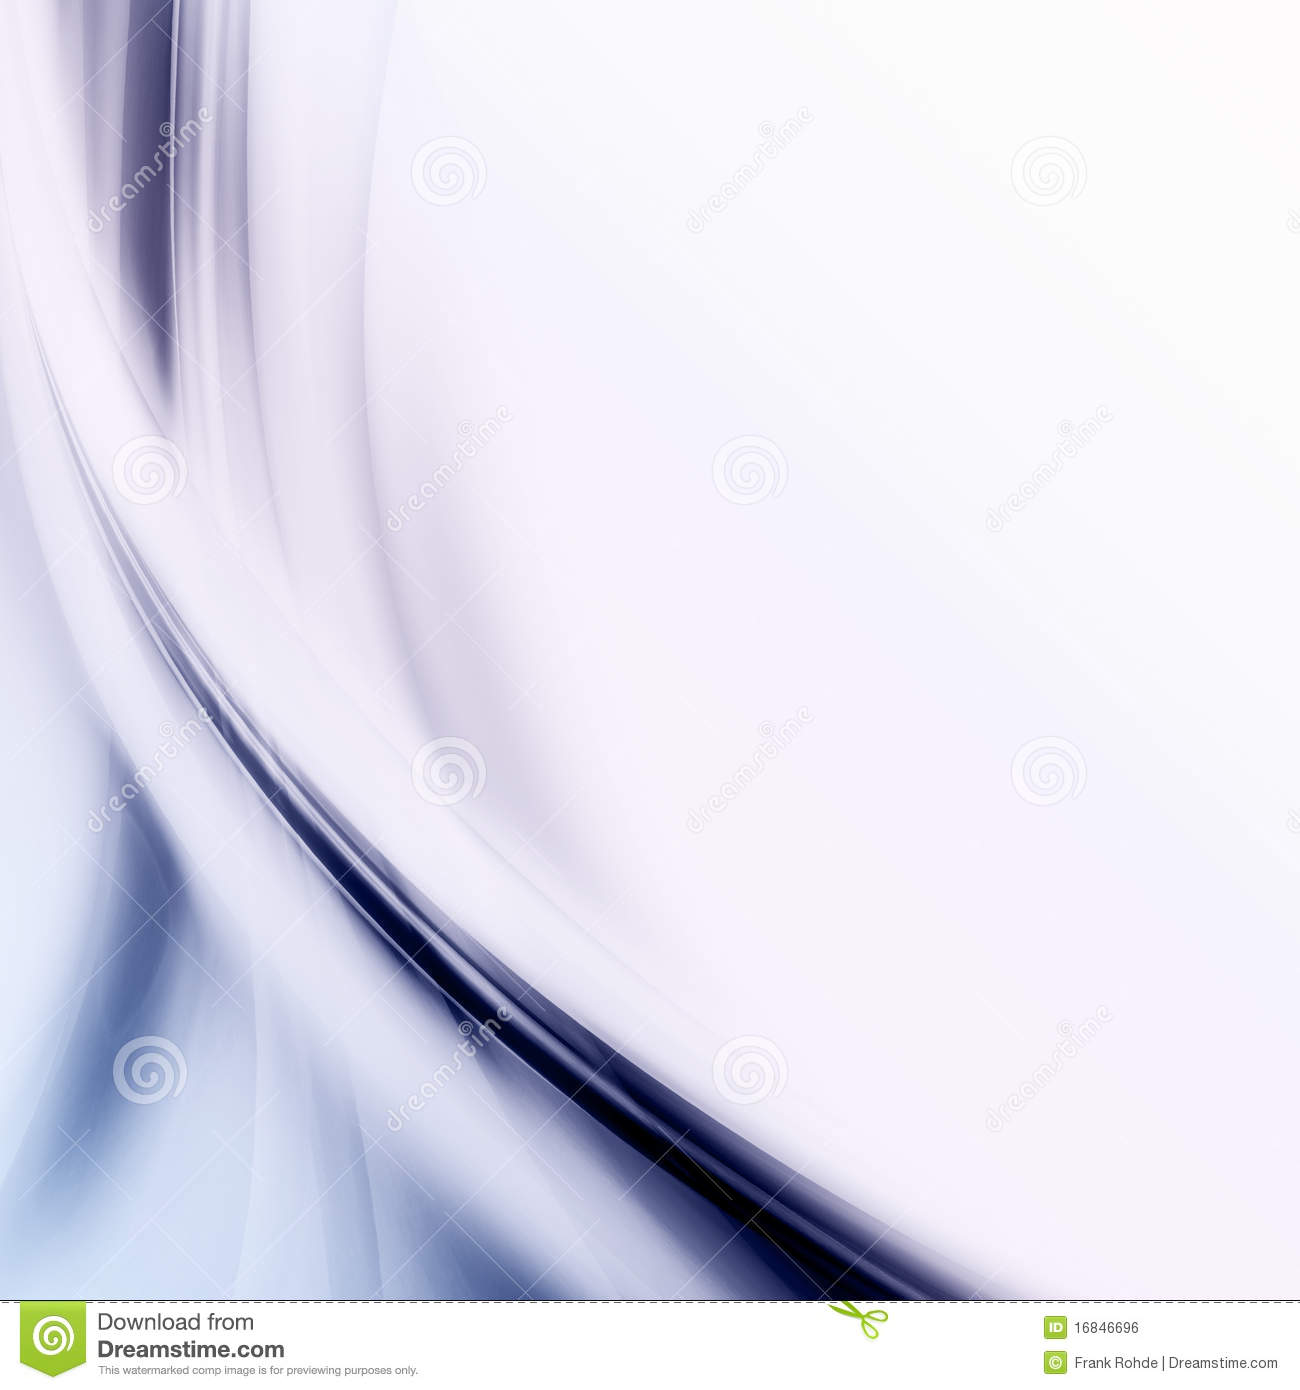 Abstract elegant background design royalty free stock image image 16846696 - Photo image design ...